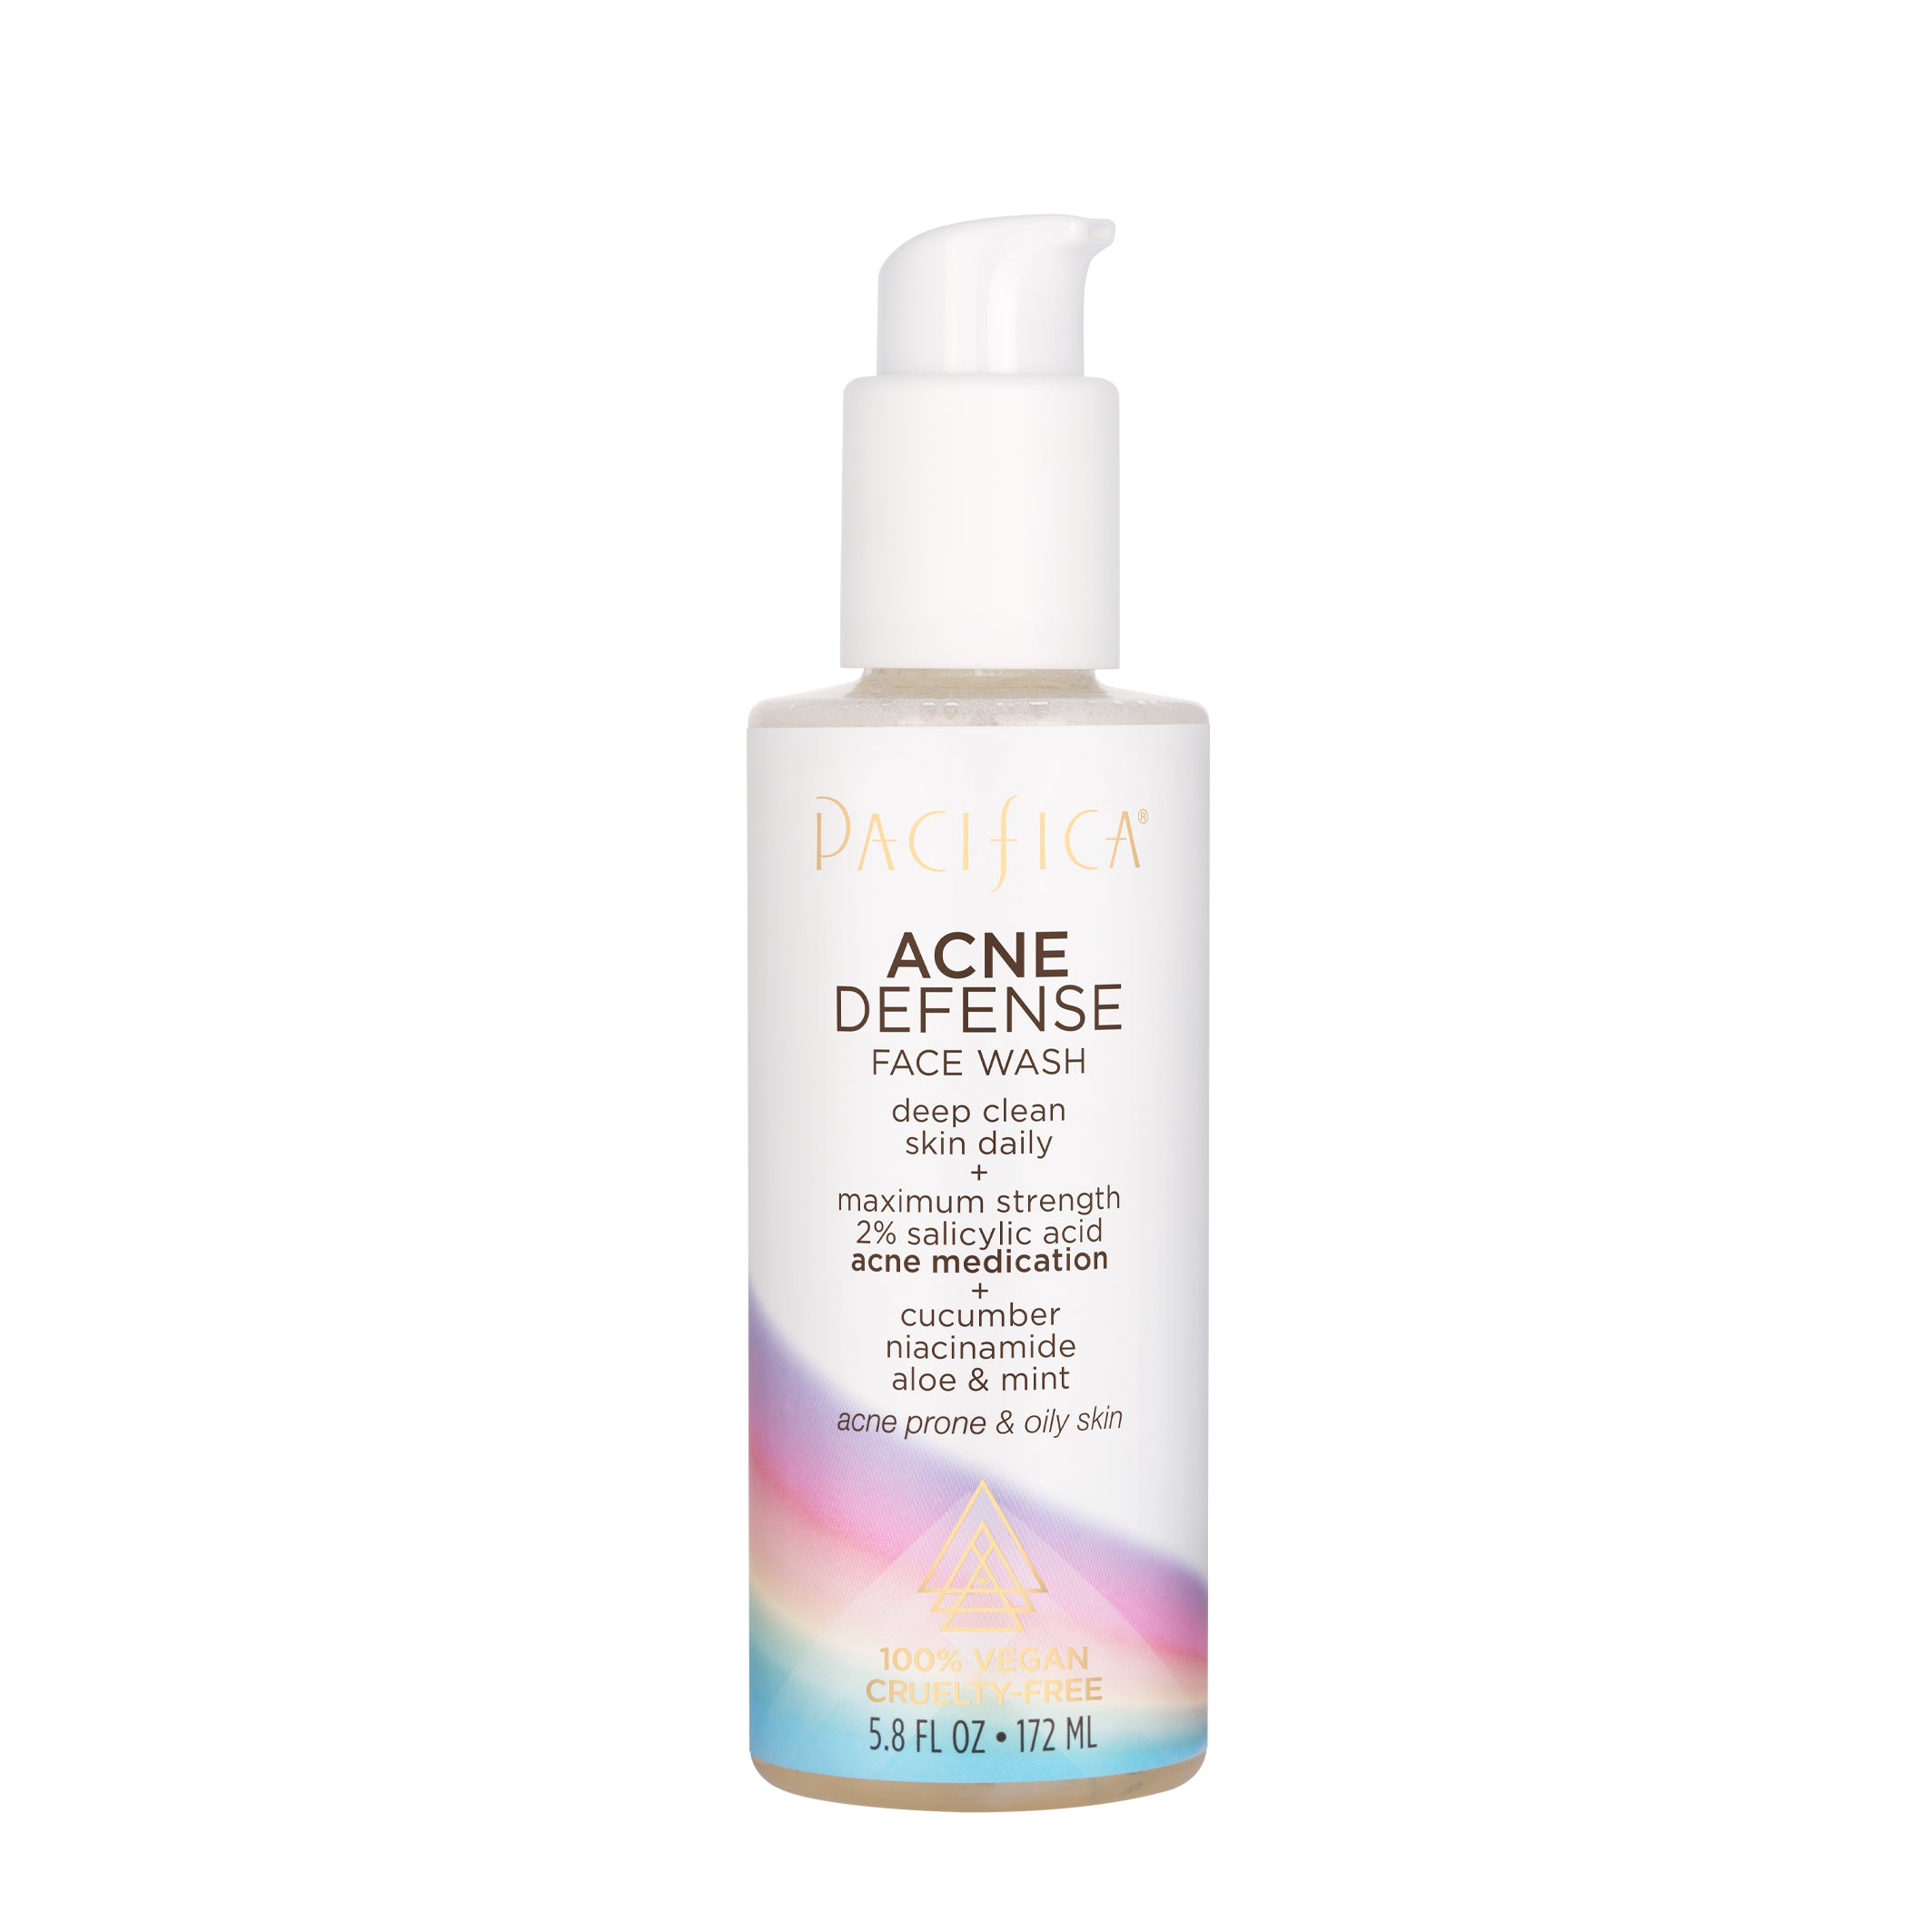 Acne Defense Face Wash - Skin Care - Pacifica Beauty